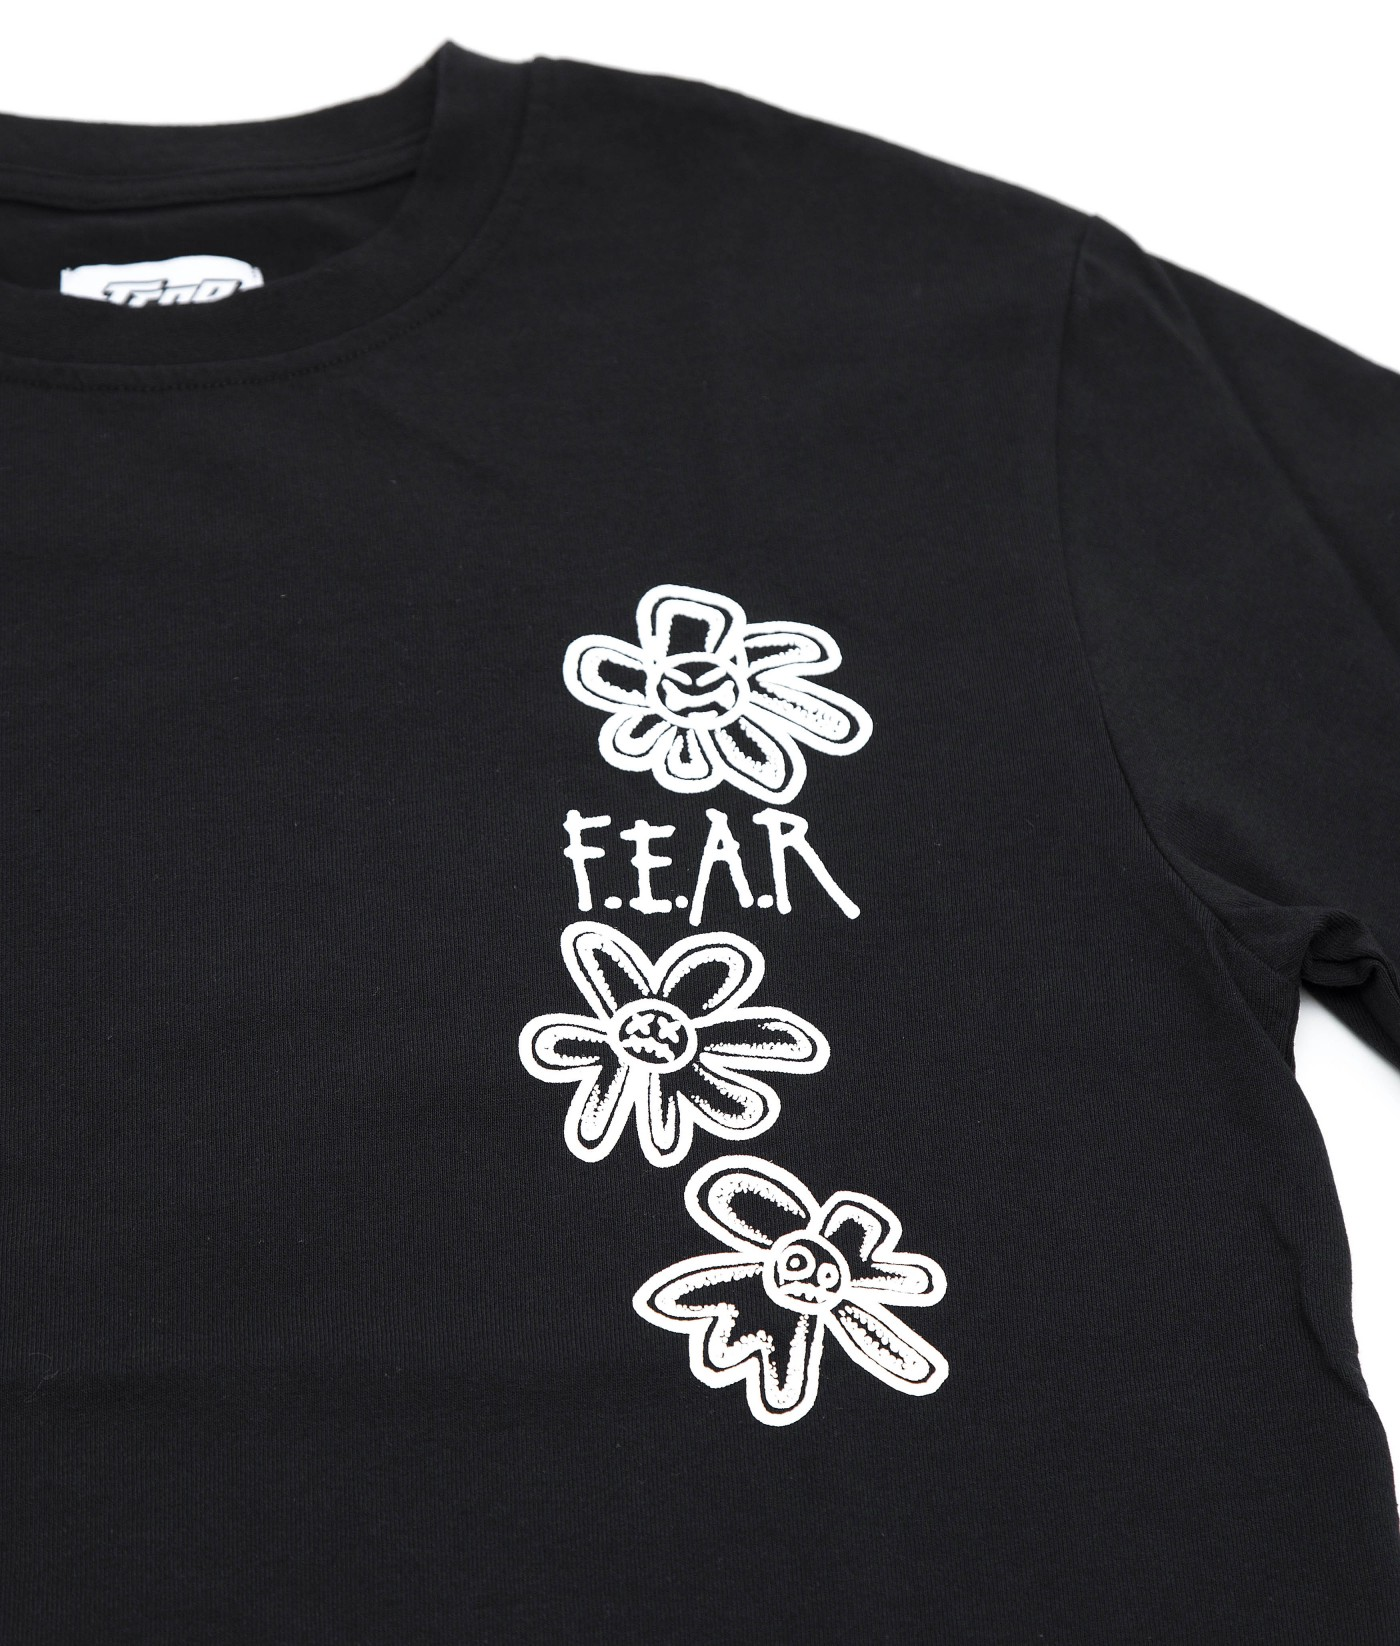 FEAR WHAT GOES AROUND COMES AROUND GRAPHIC LONG SLEEVES (BLACK)